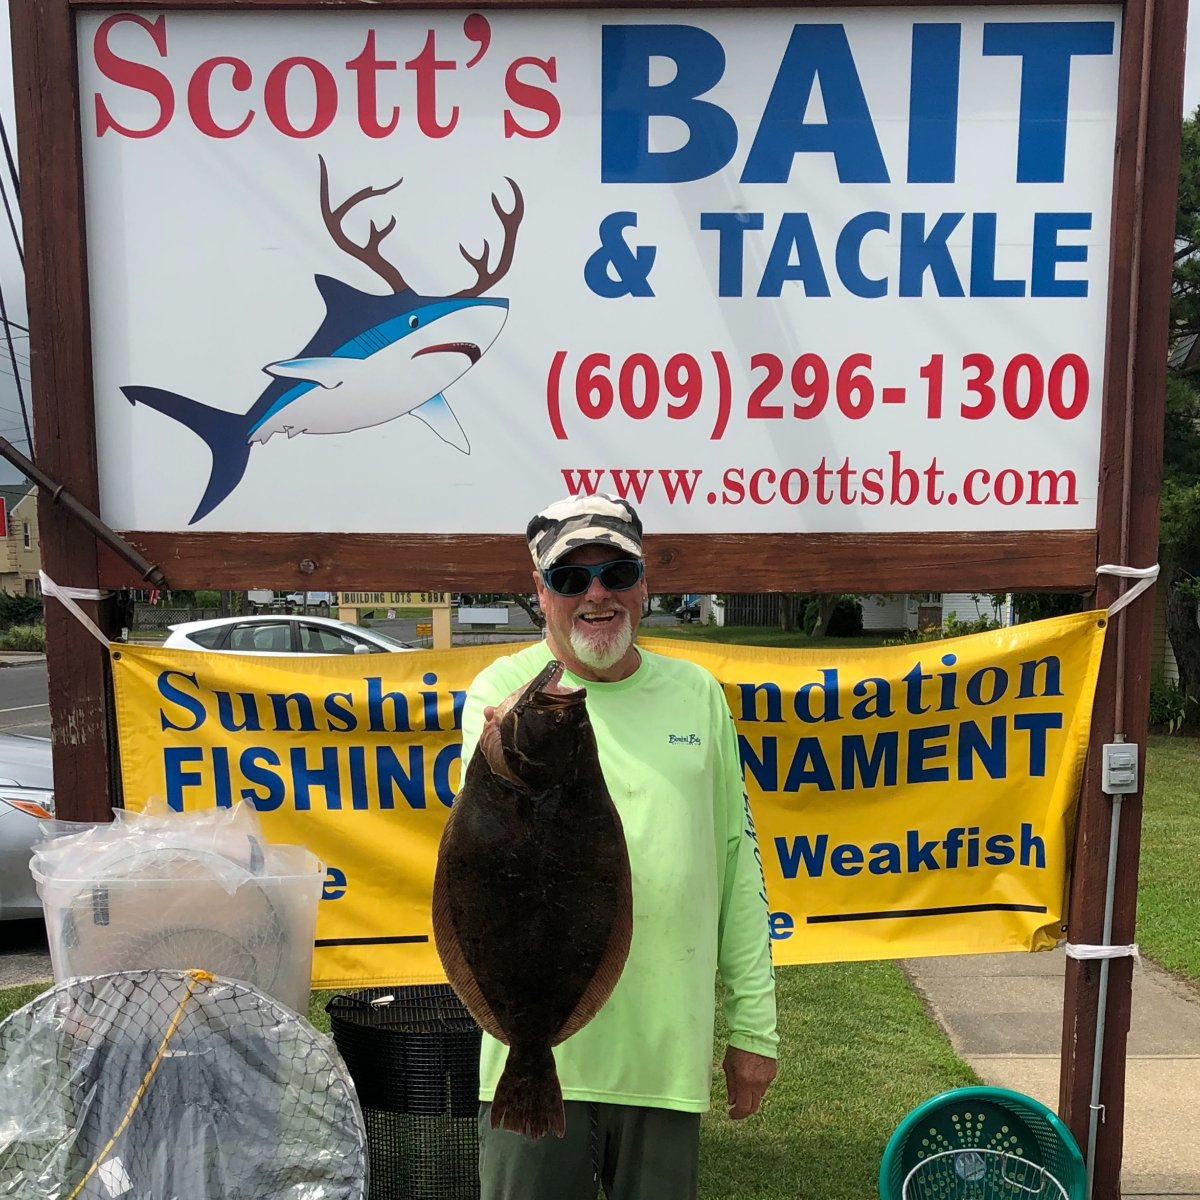 Scotts Bait & Tackle (@ScottsBT) | Twitter